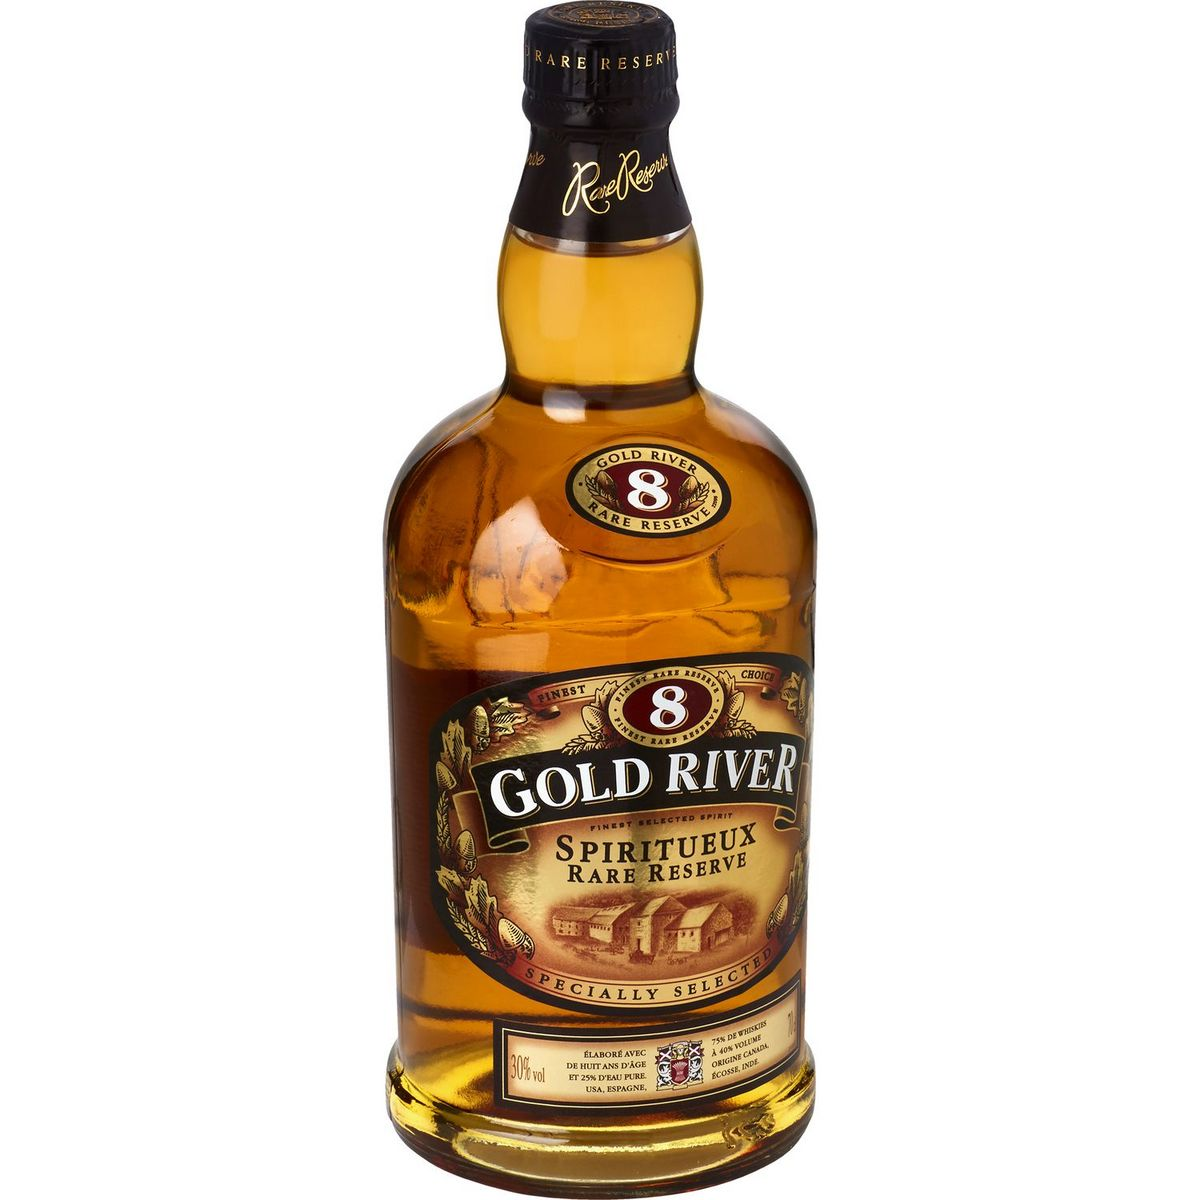 Whisky rare reserve 8 ans d'âge, Gold River (70 cl)